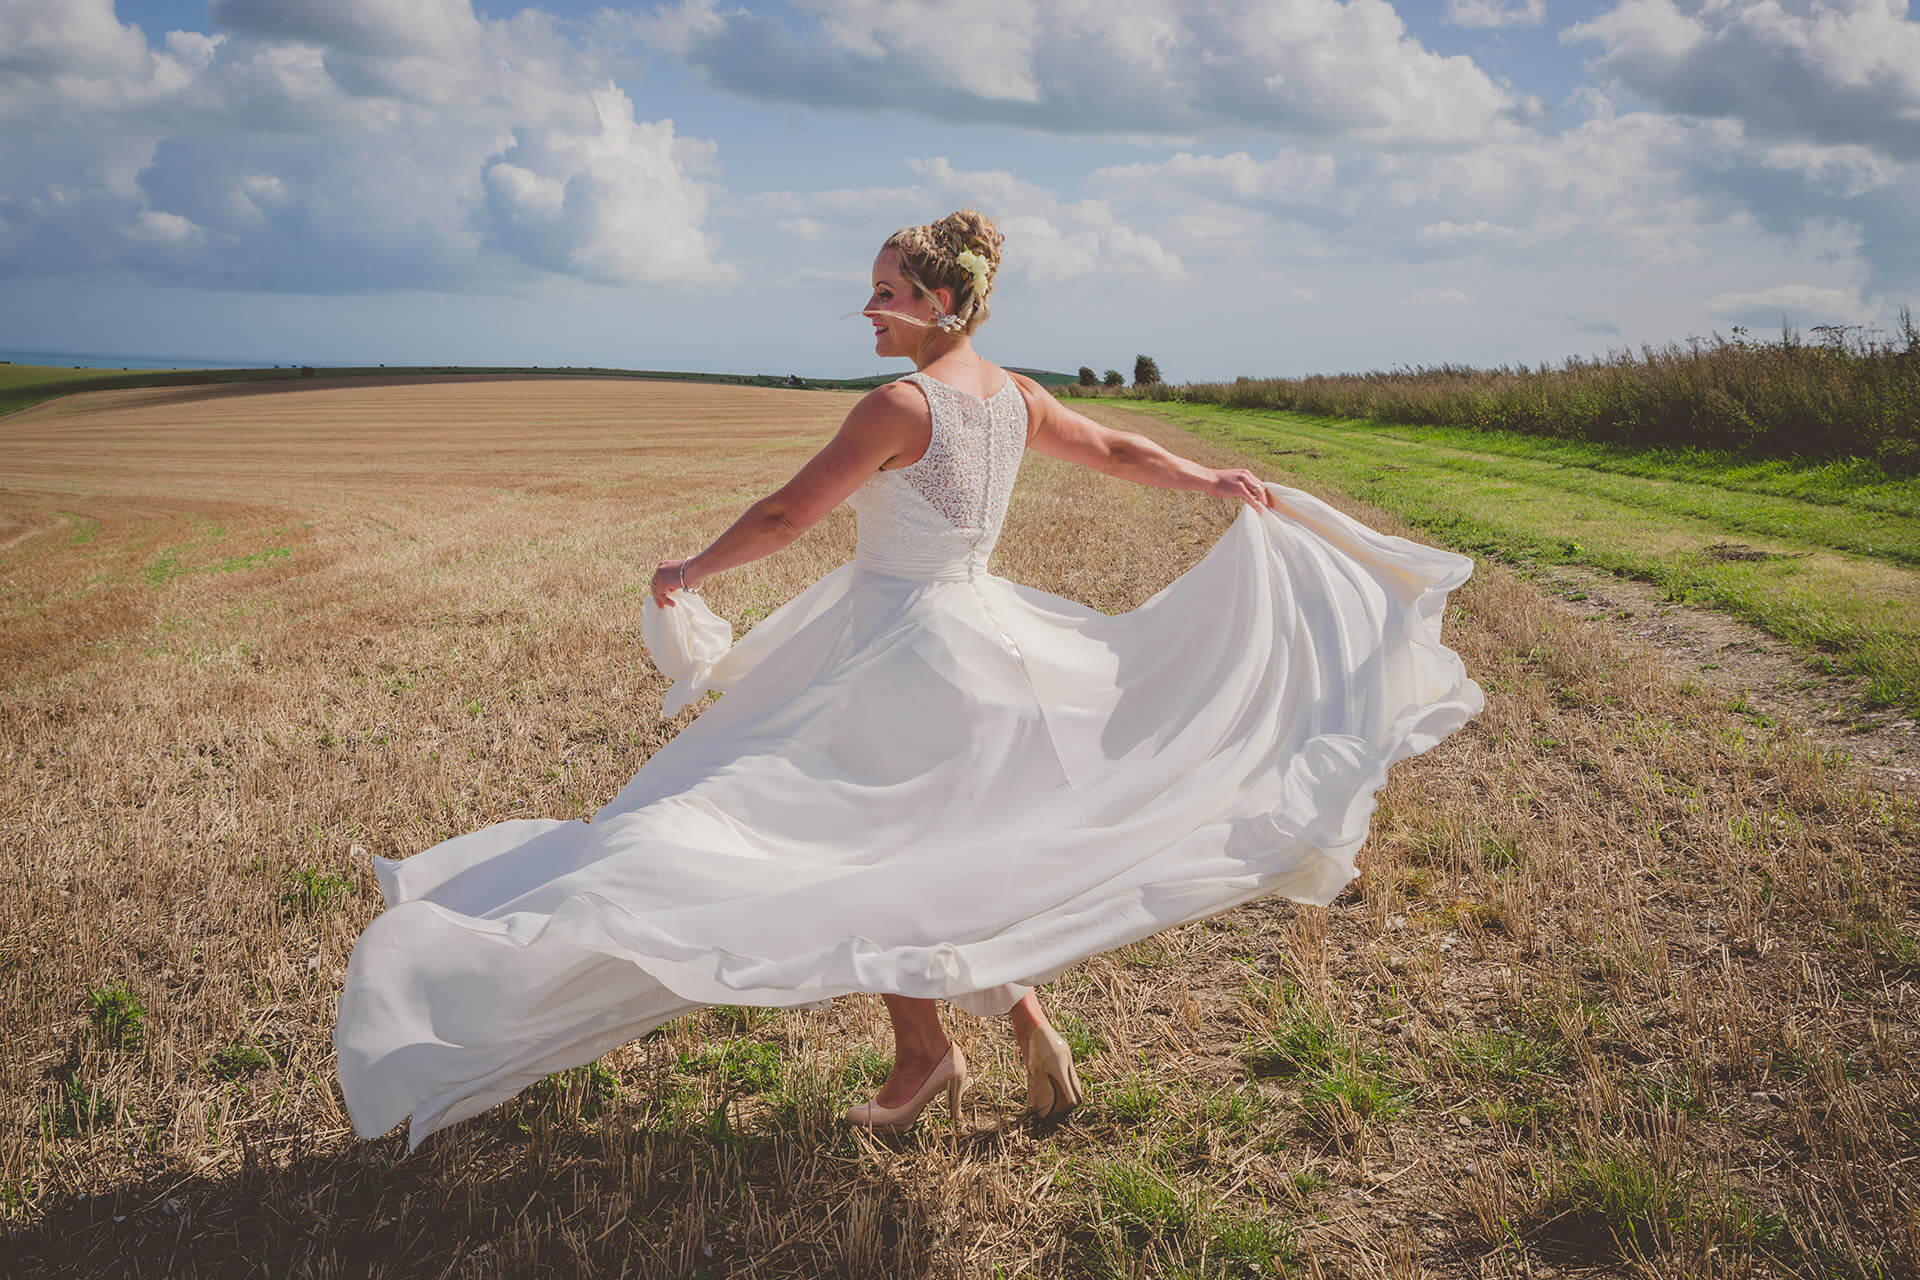 Bride twirling her dress